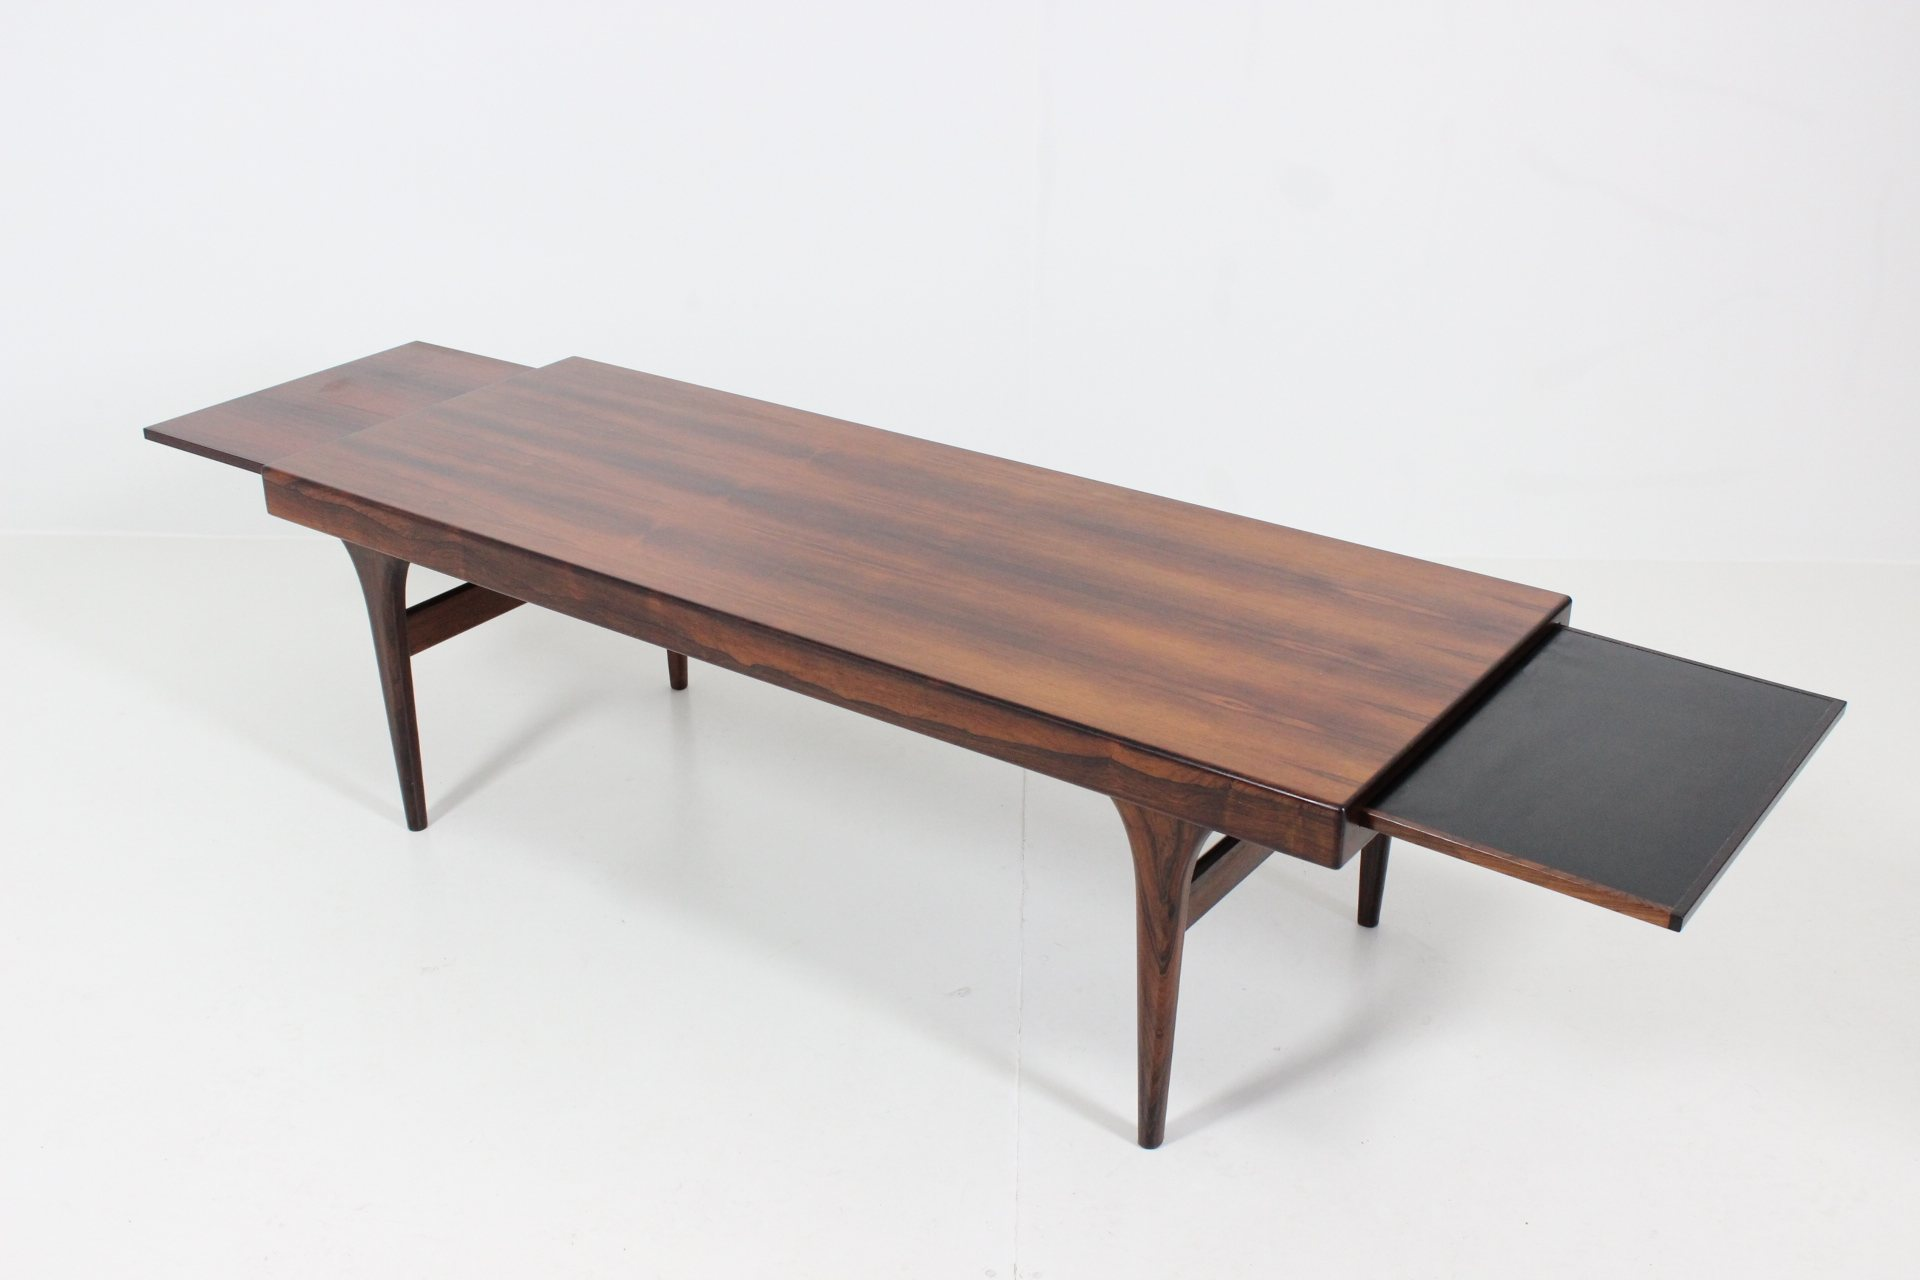 Retro Vintage Coffee Table by Johannes Andersen for CFC Silkeborg